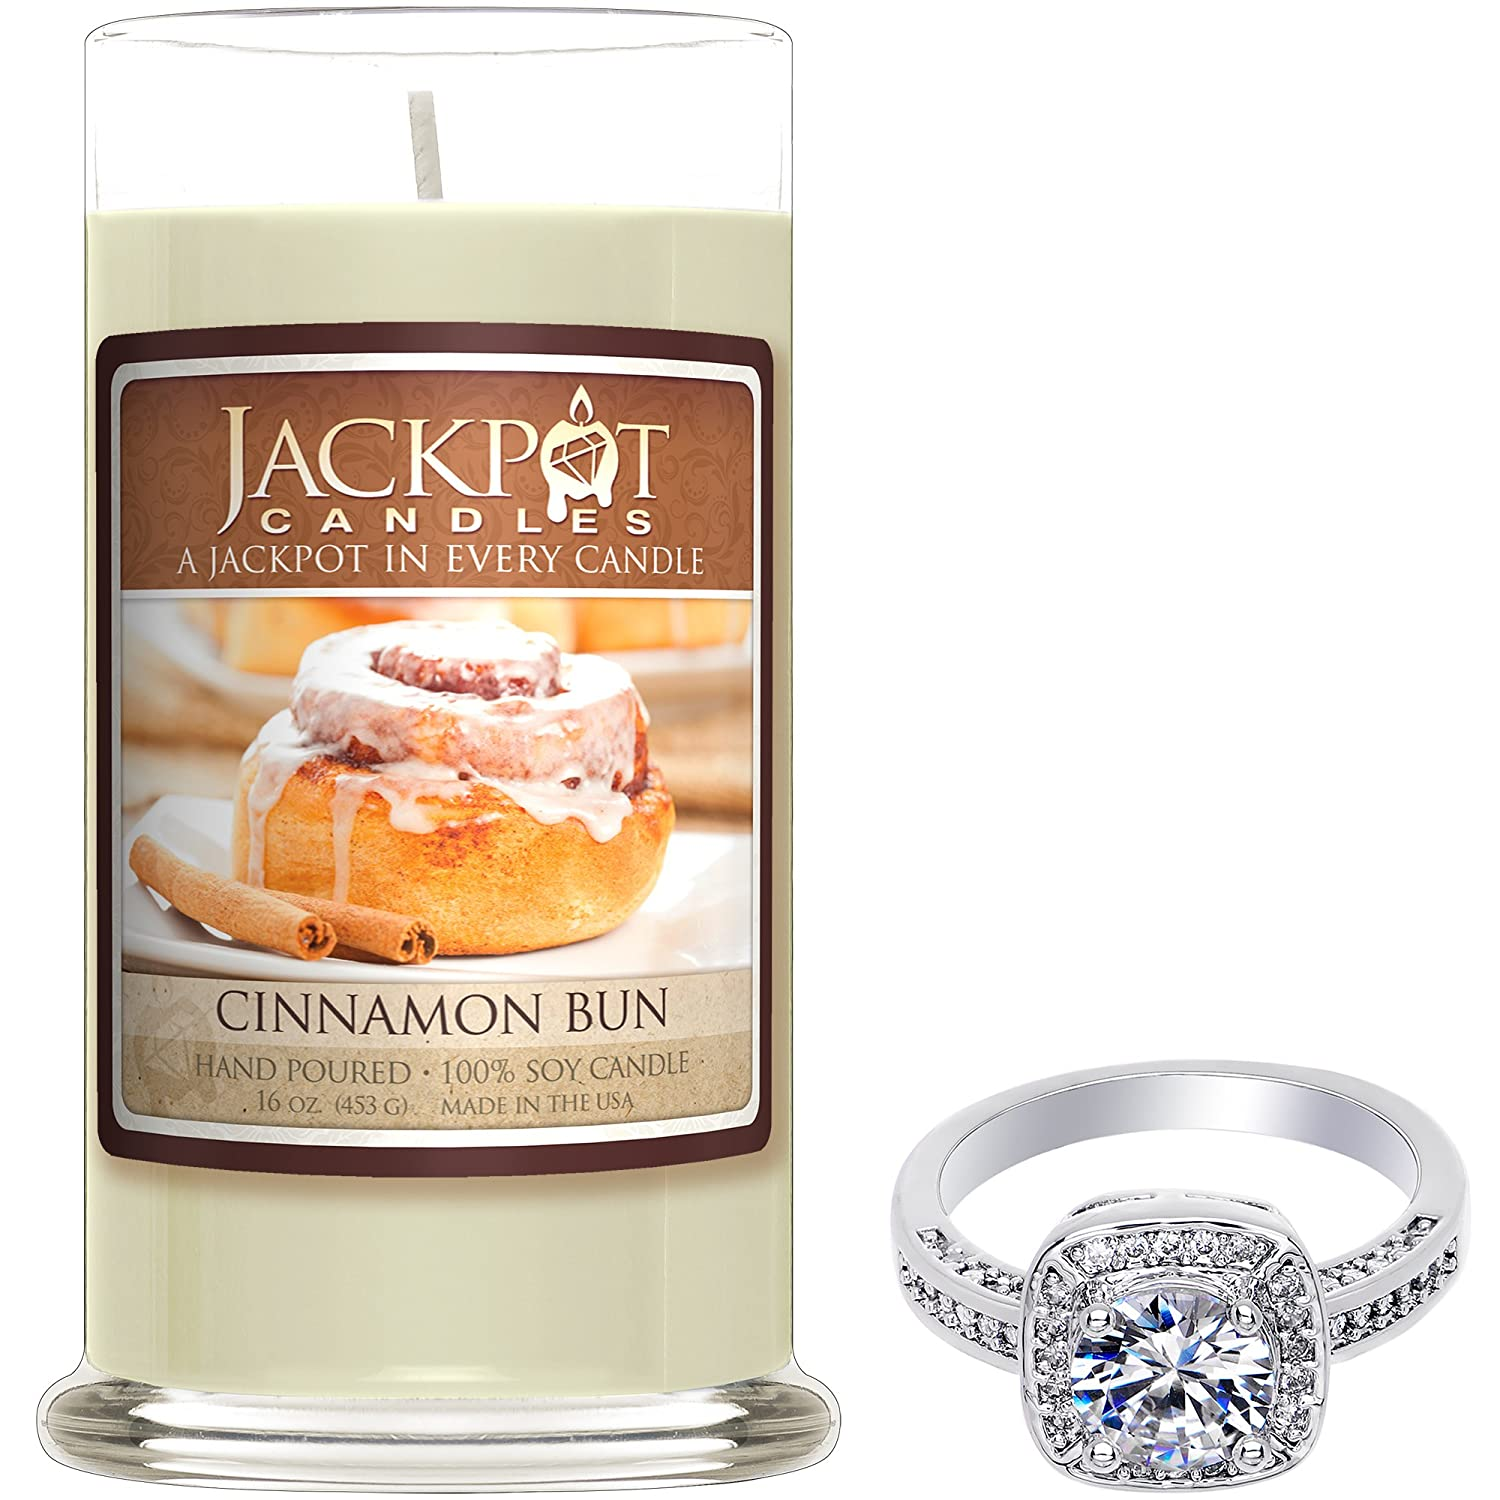 Cinnamon Bun Candle with Ring Inside (Surprise Jewelry Valued at $15 to $5,000) Ring Size 9 Jackpot Candles CAN-190-RNG-9